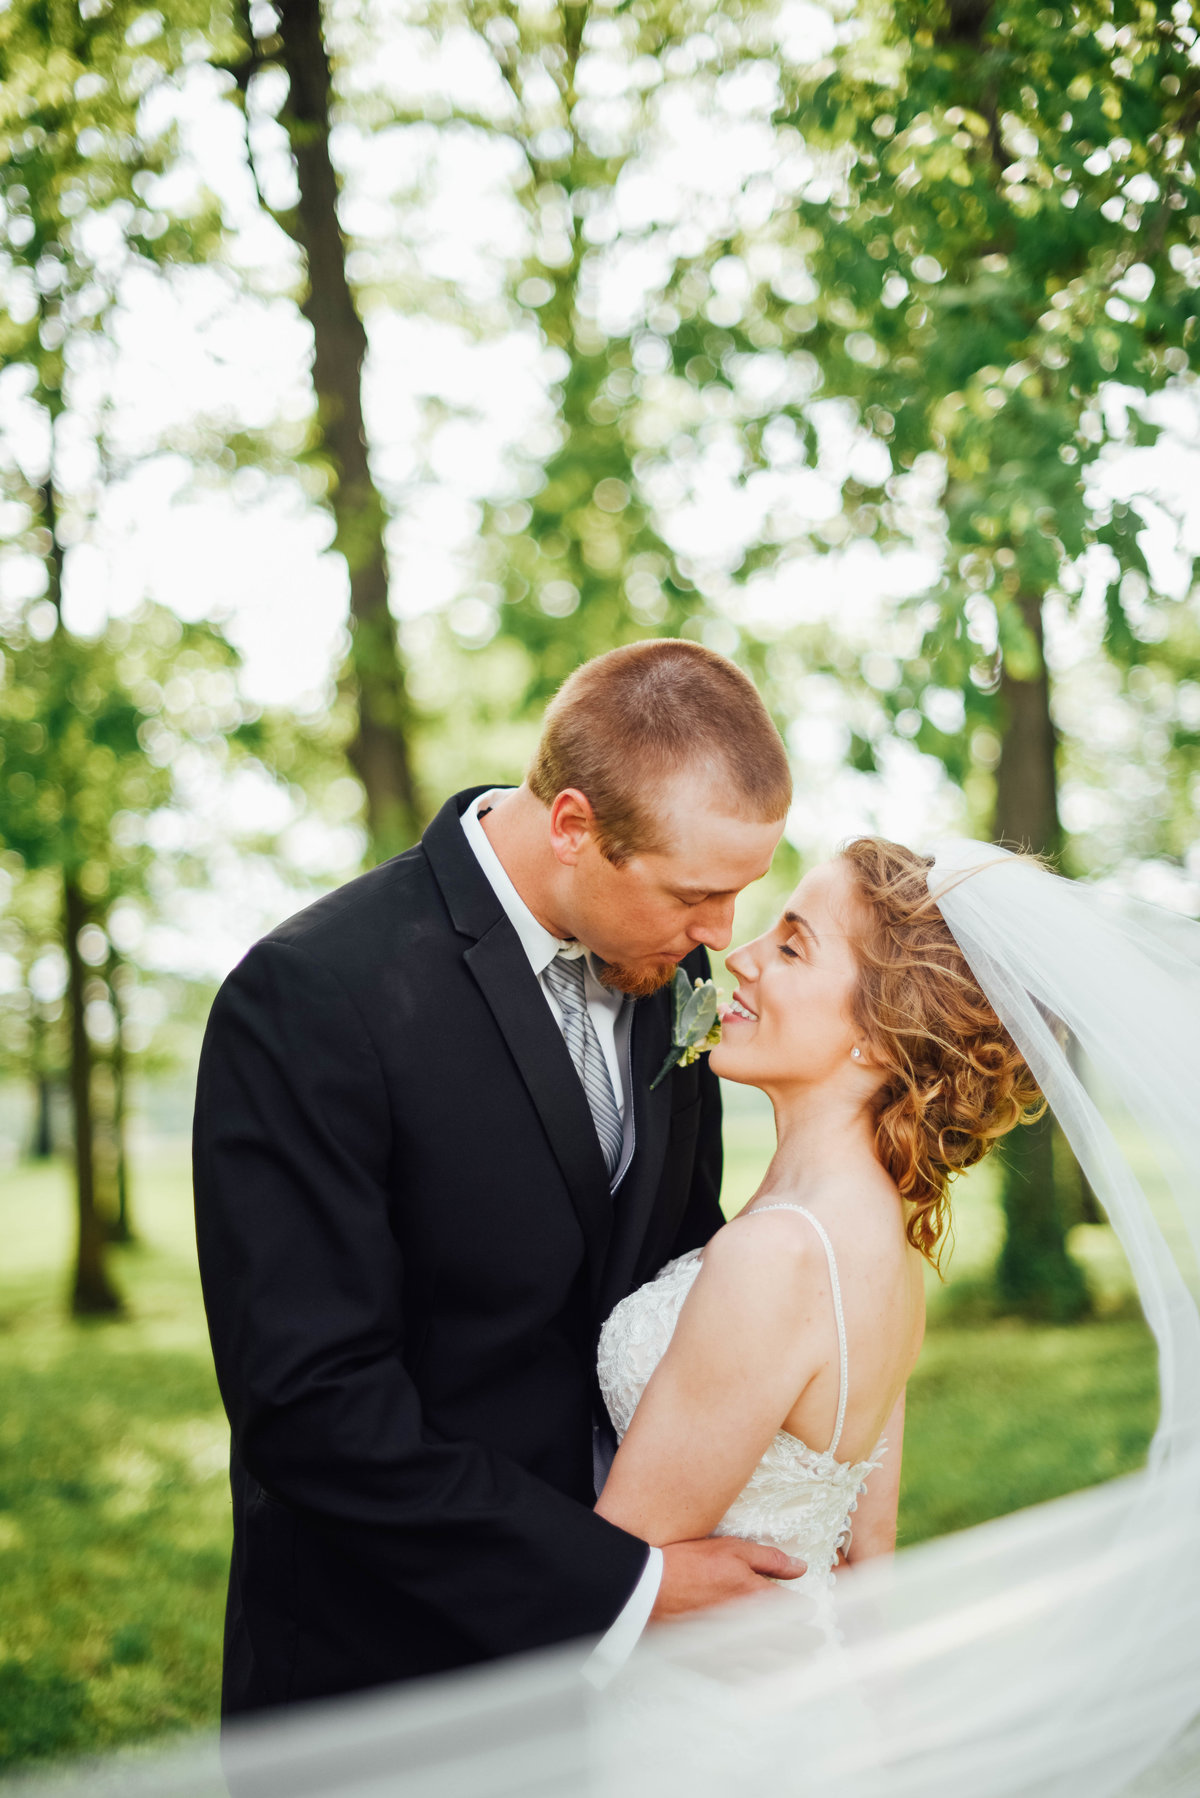 Wedding photographer in dayton ohio